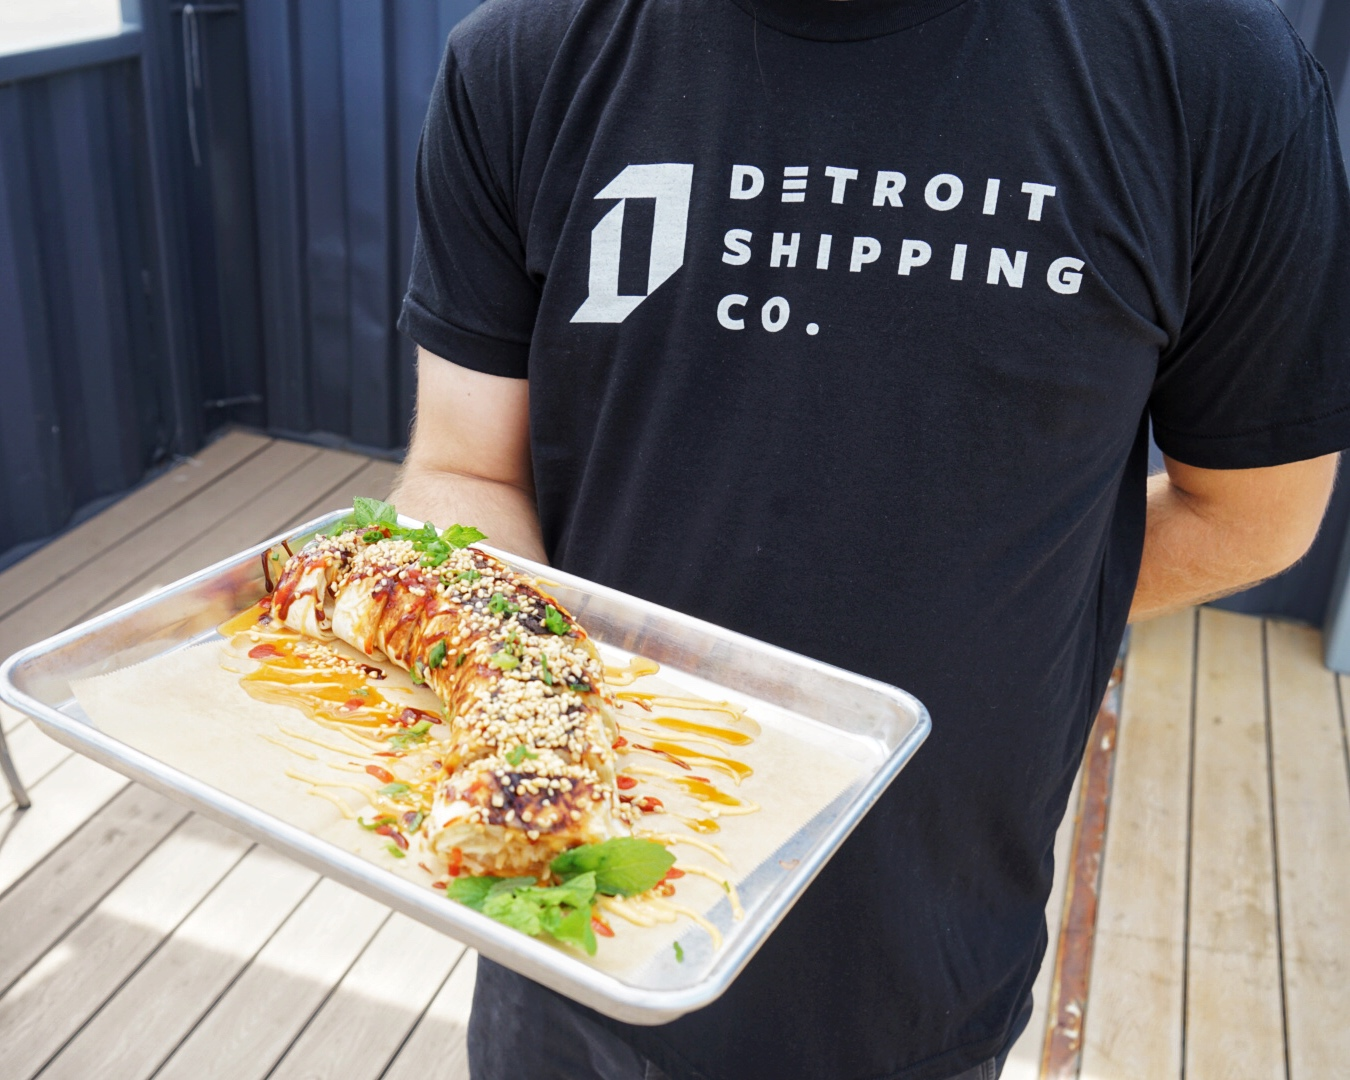 Enjoy the popular Pad Thai Roll. Only available at the Detroit Shipping Company.